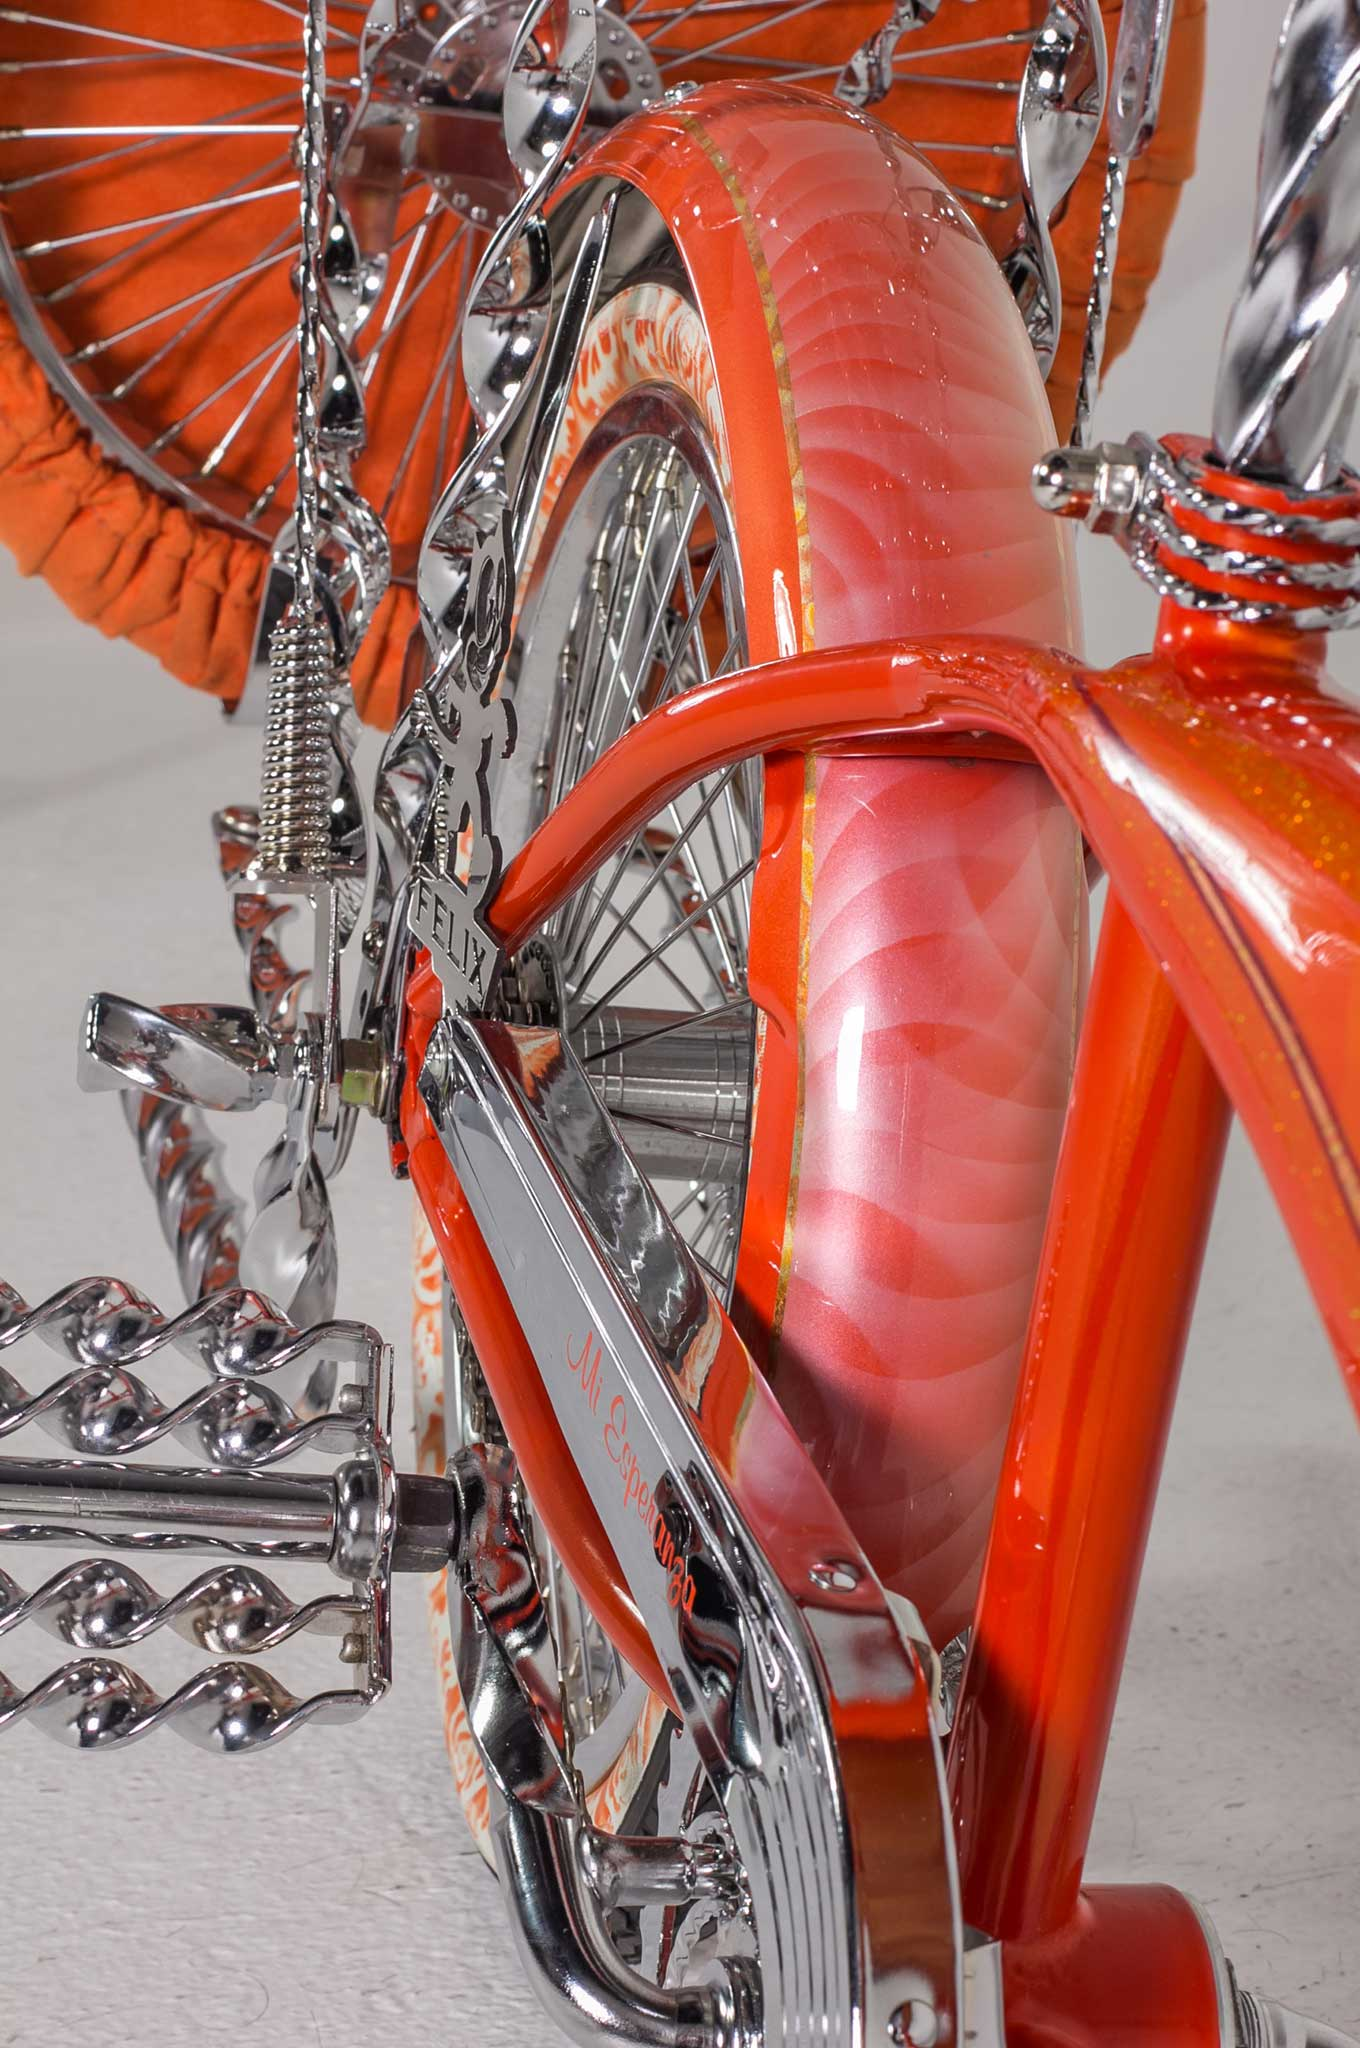 Bike Frame Orange Gold Candy And